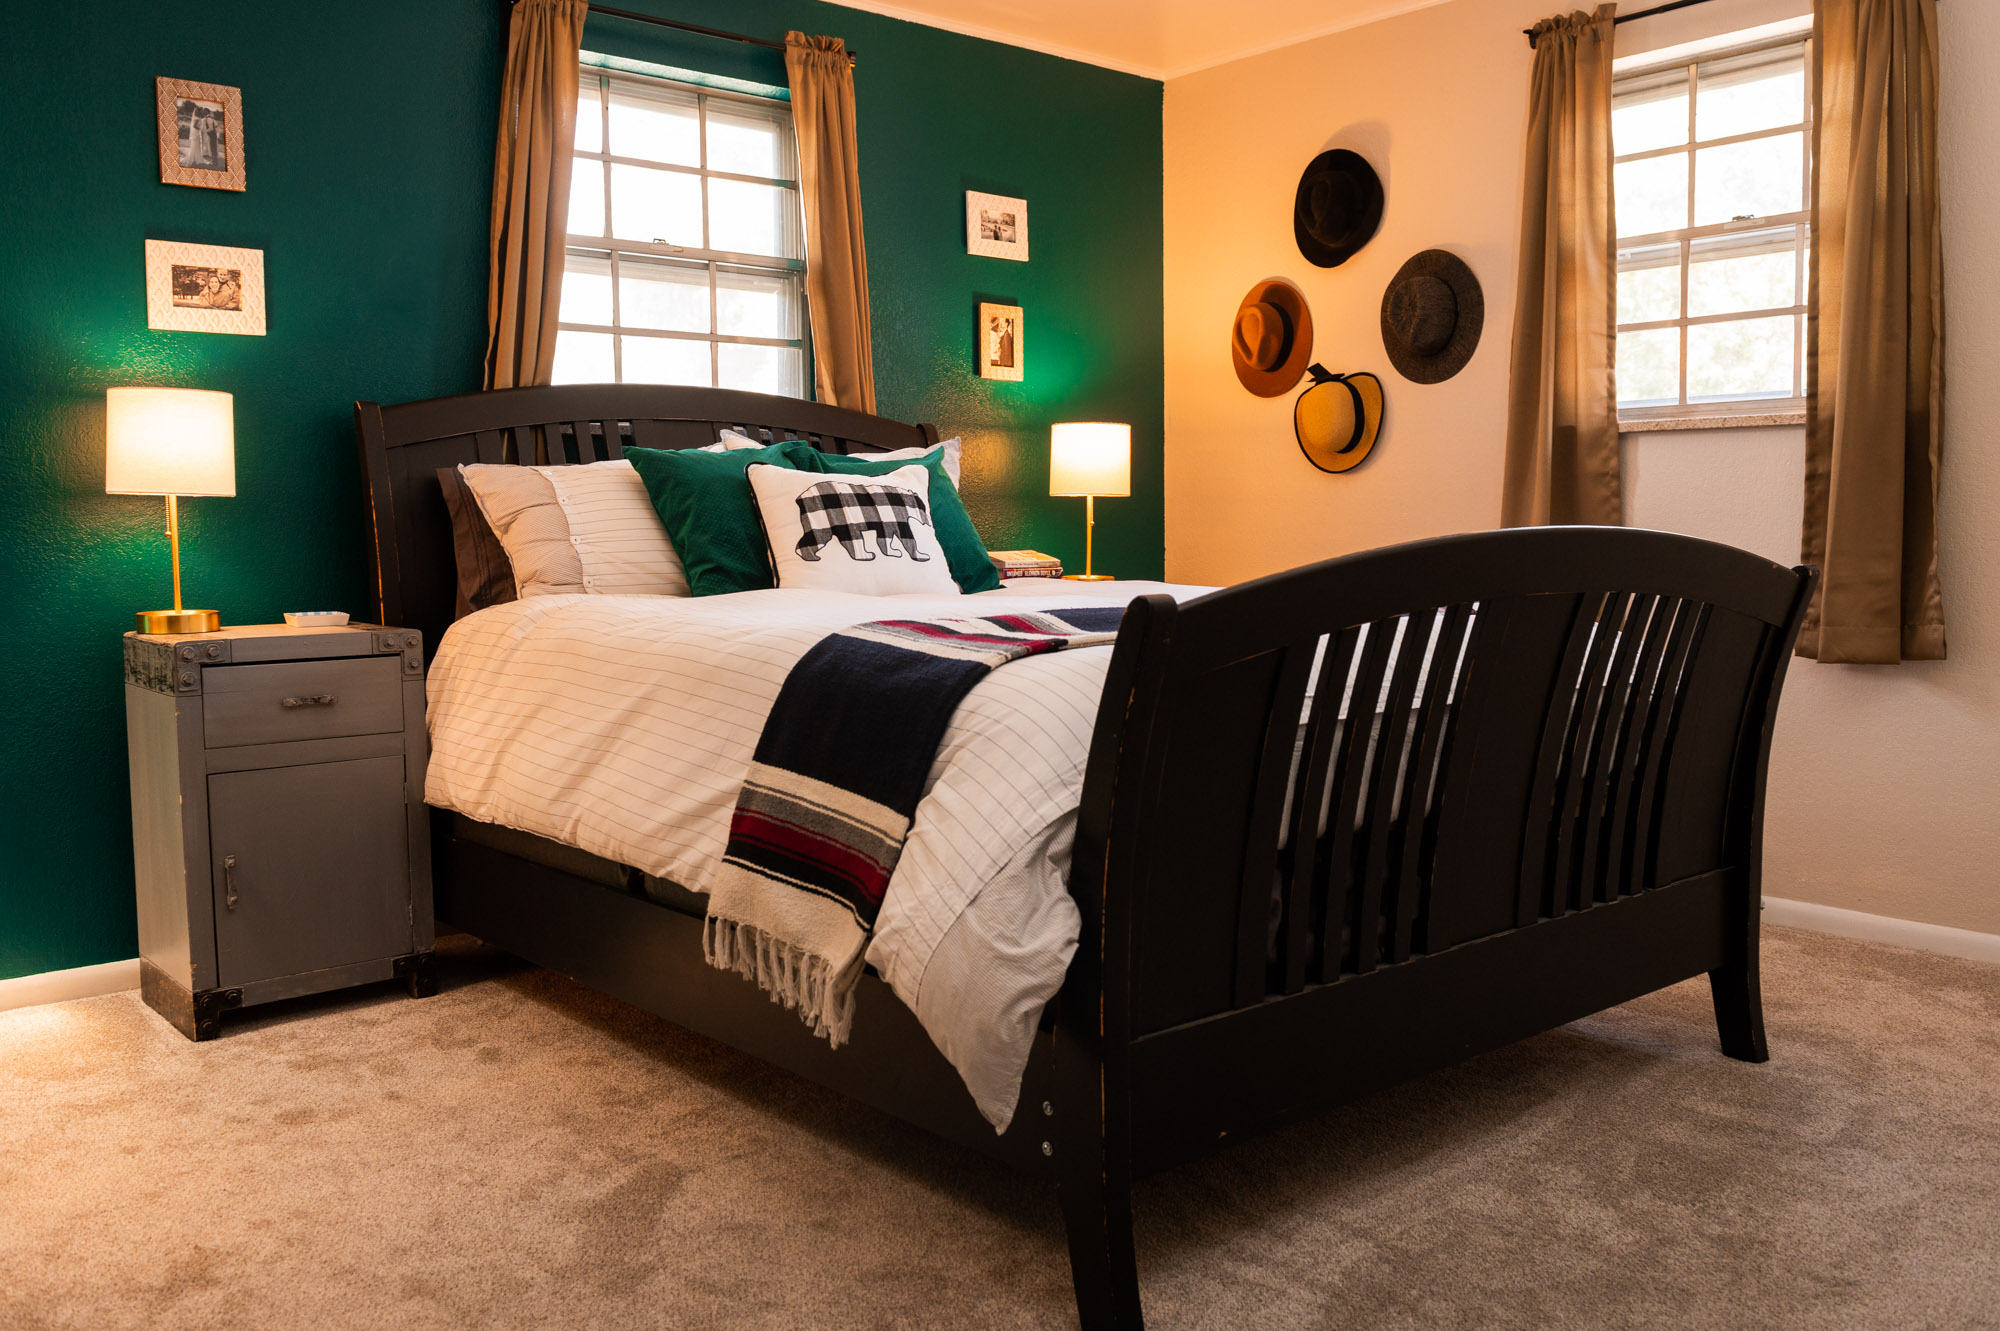 Emerald Green Master with Gold accents and black furniture